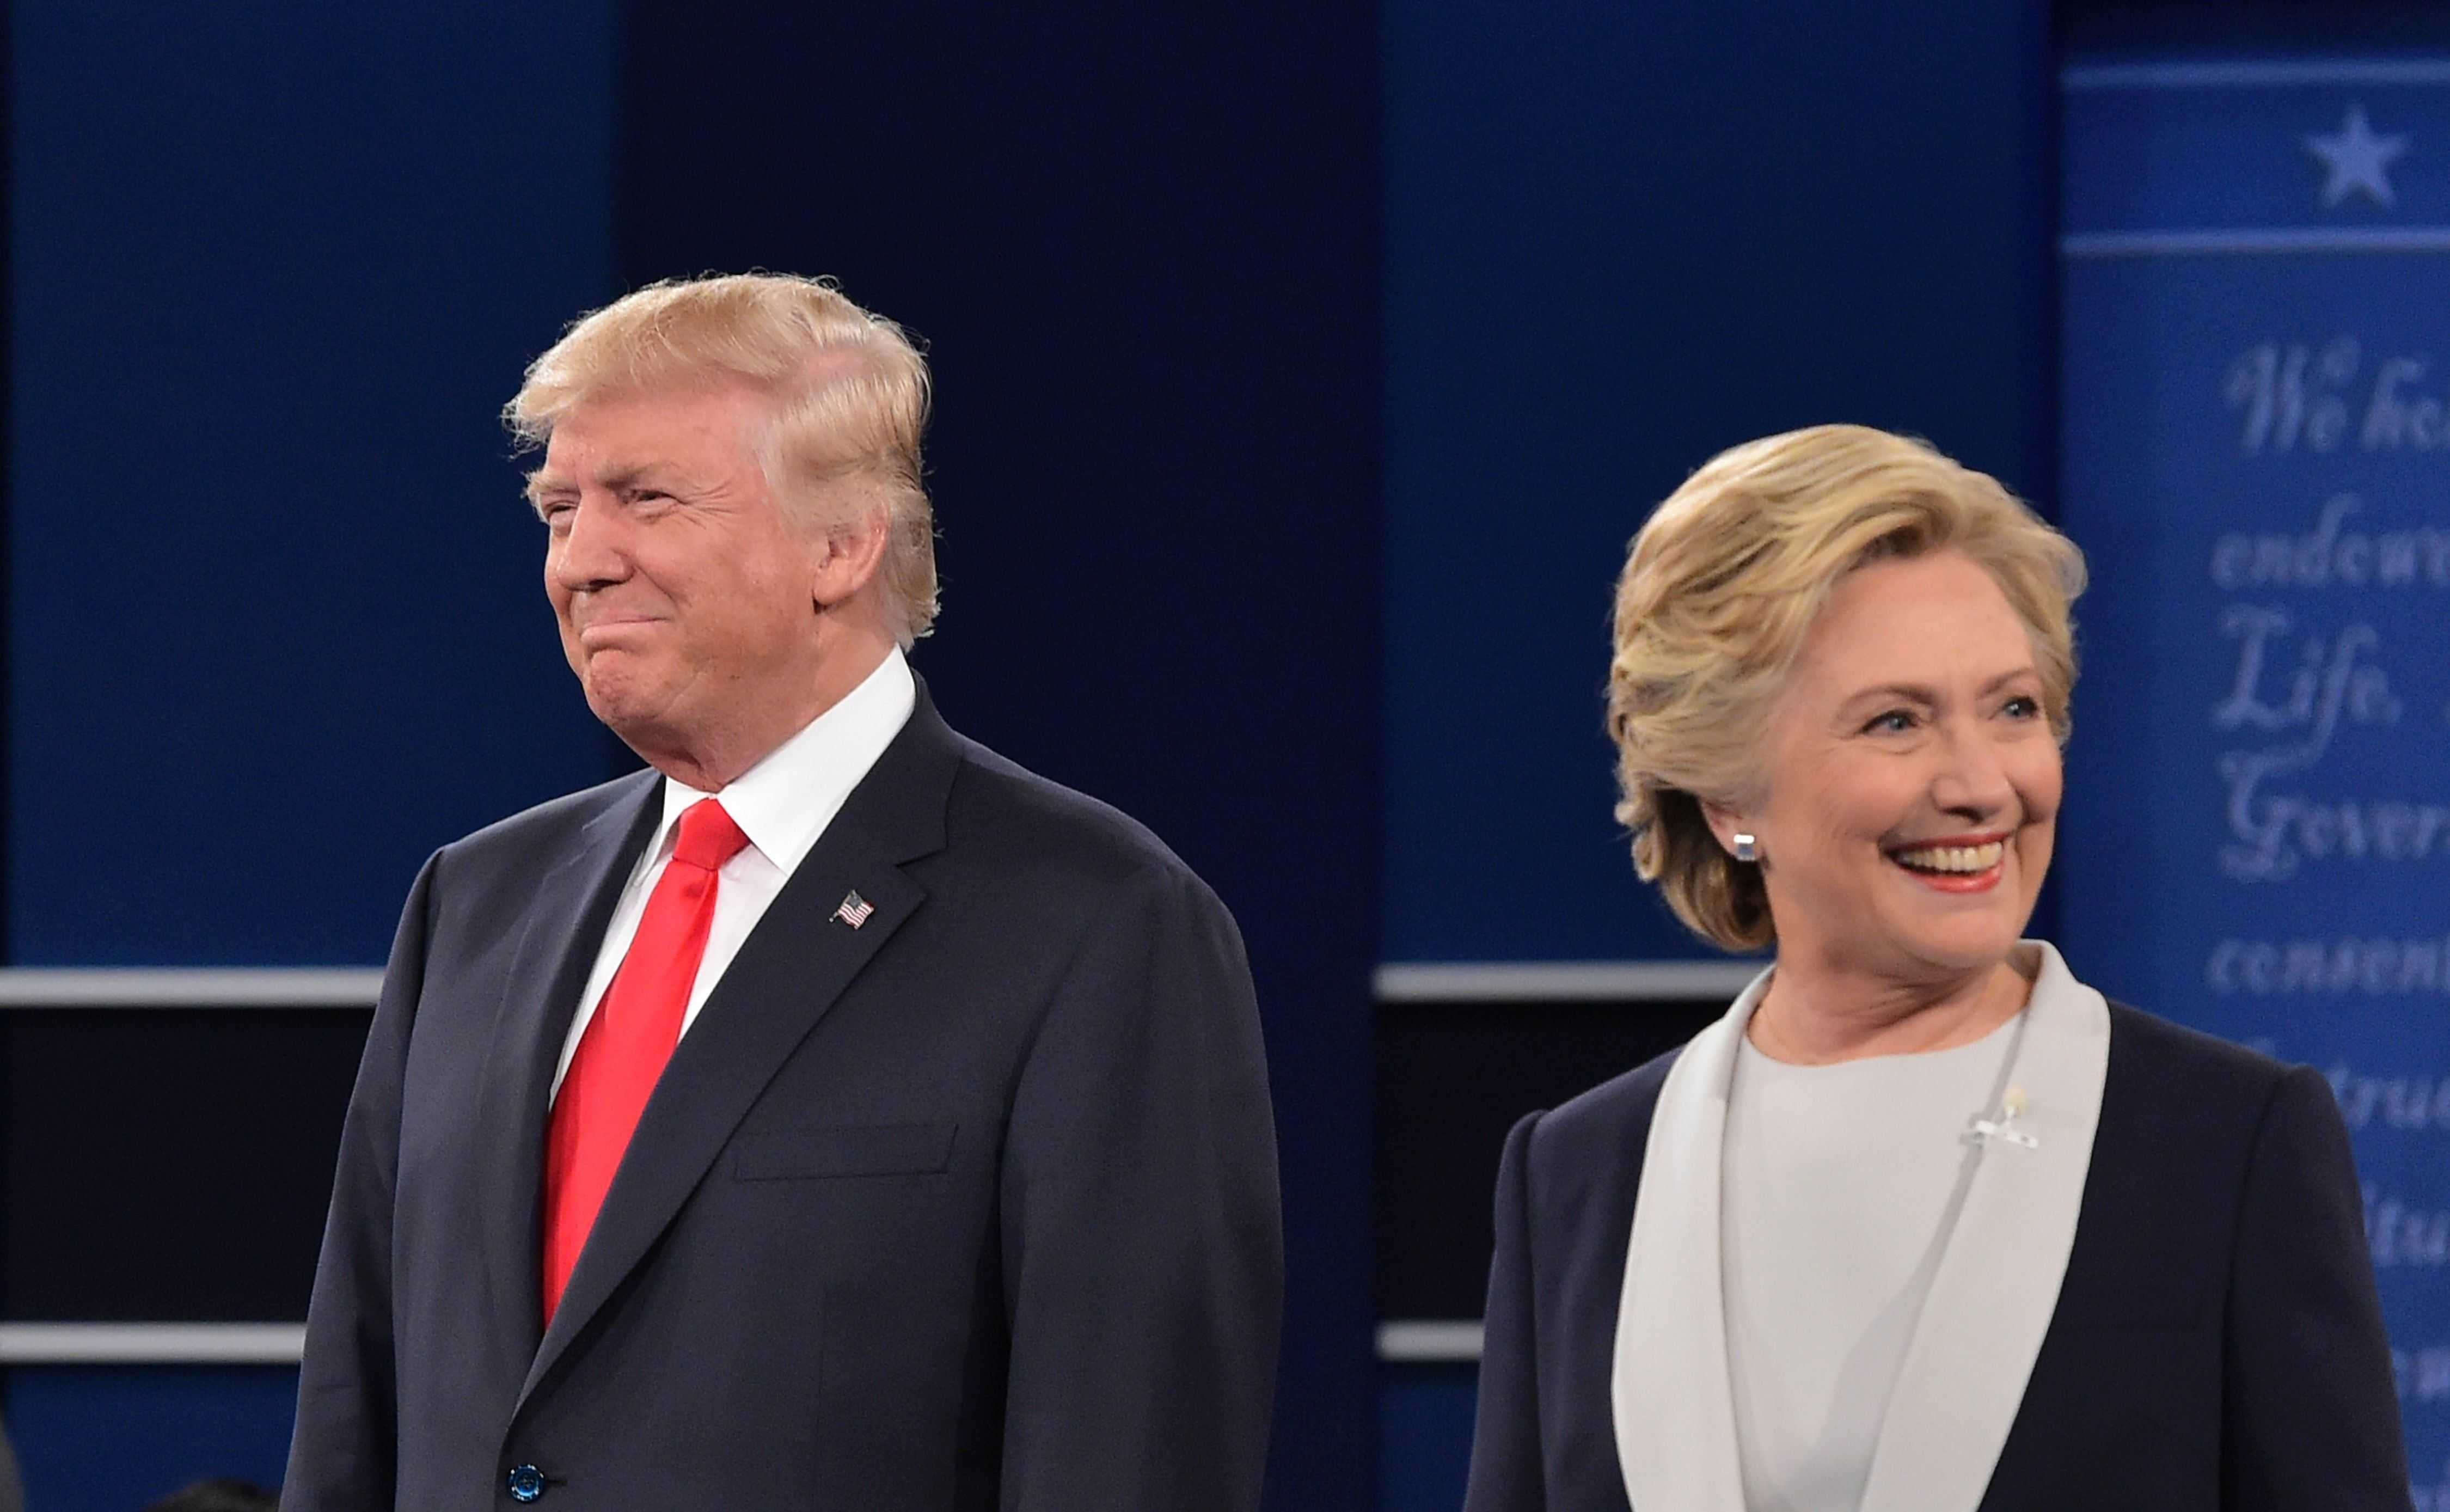 Donald Trump and Hillary Clinton arrive on stage for the second presidential debate on Oct. 9, 2016.